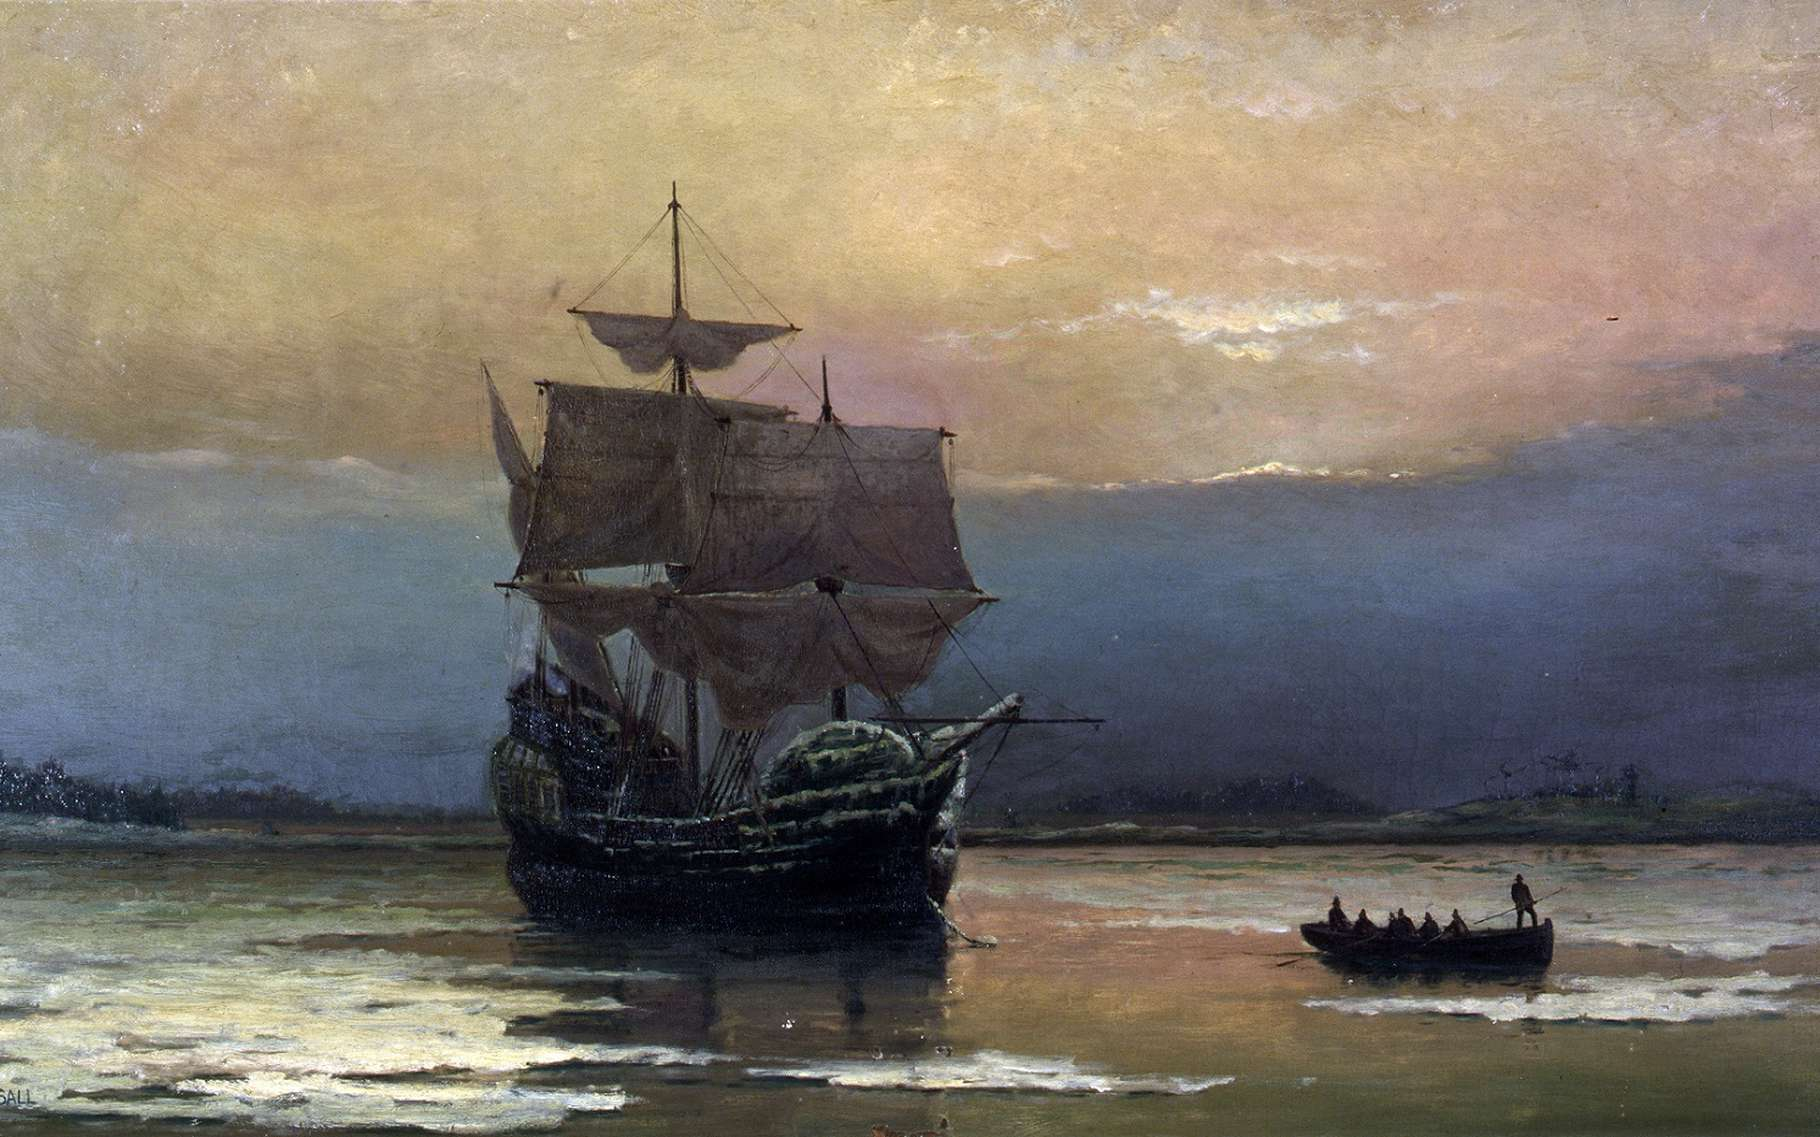 Le navire Mayflower arrivant dans la baie de Plymouth en 1620. Des colons débarquent dans une chaloupe. Tableau peint par William Halsall en 1882, Pilgrim Hall Museum, Plymouth, Massachusetts, États-Unis. © Wikimedia Commons, domaine public.